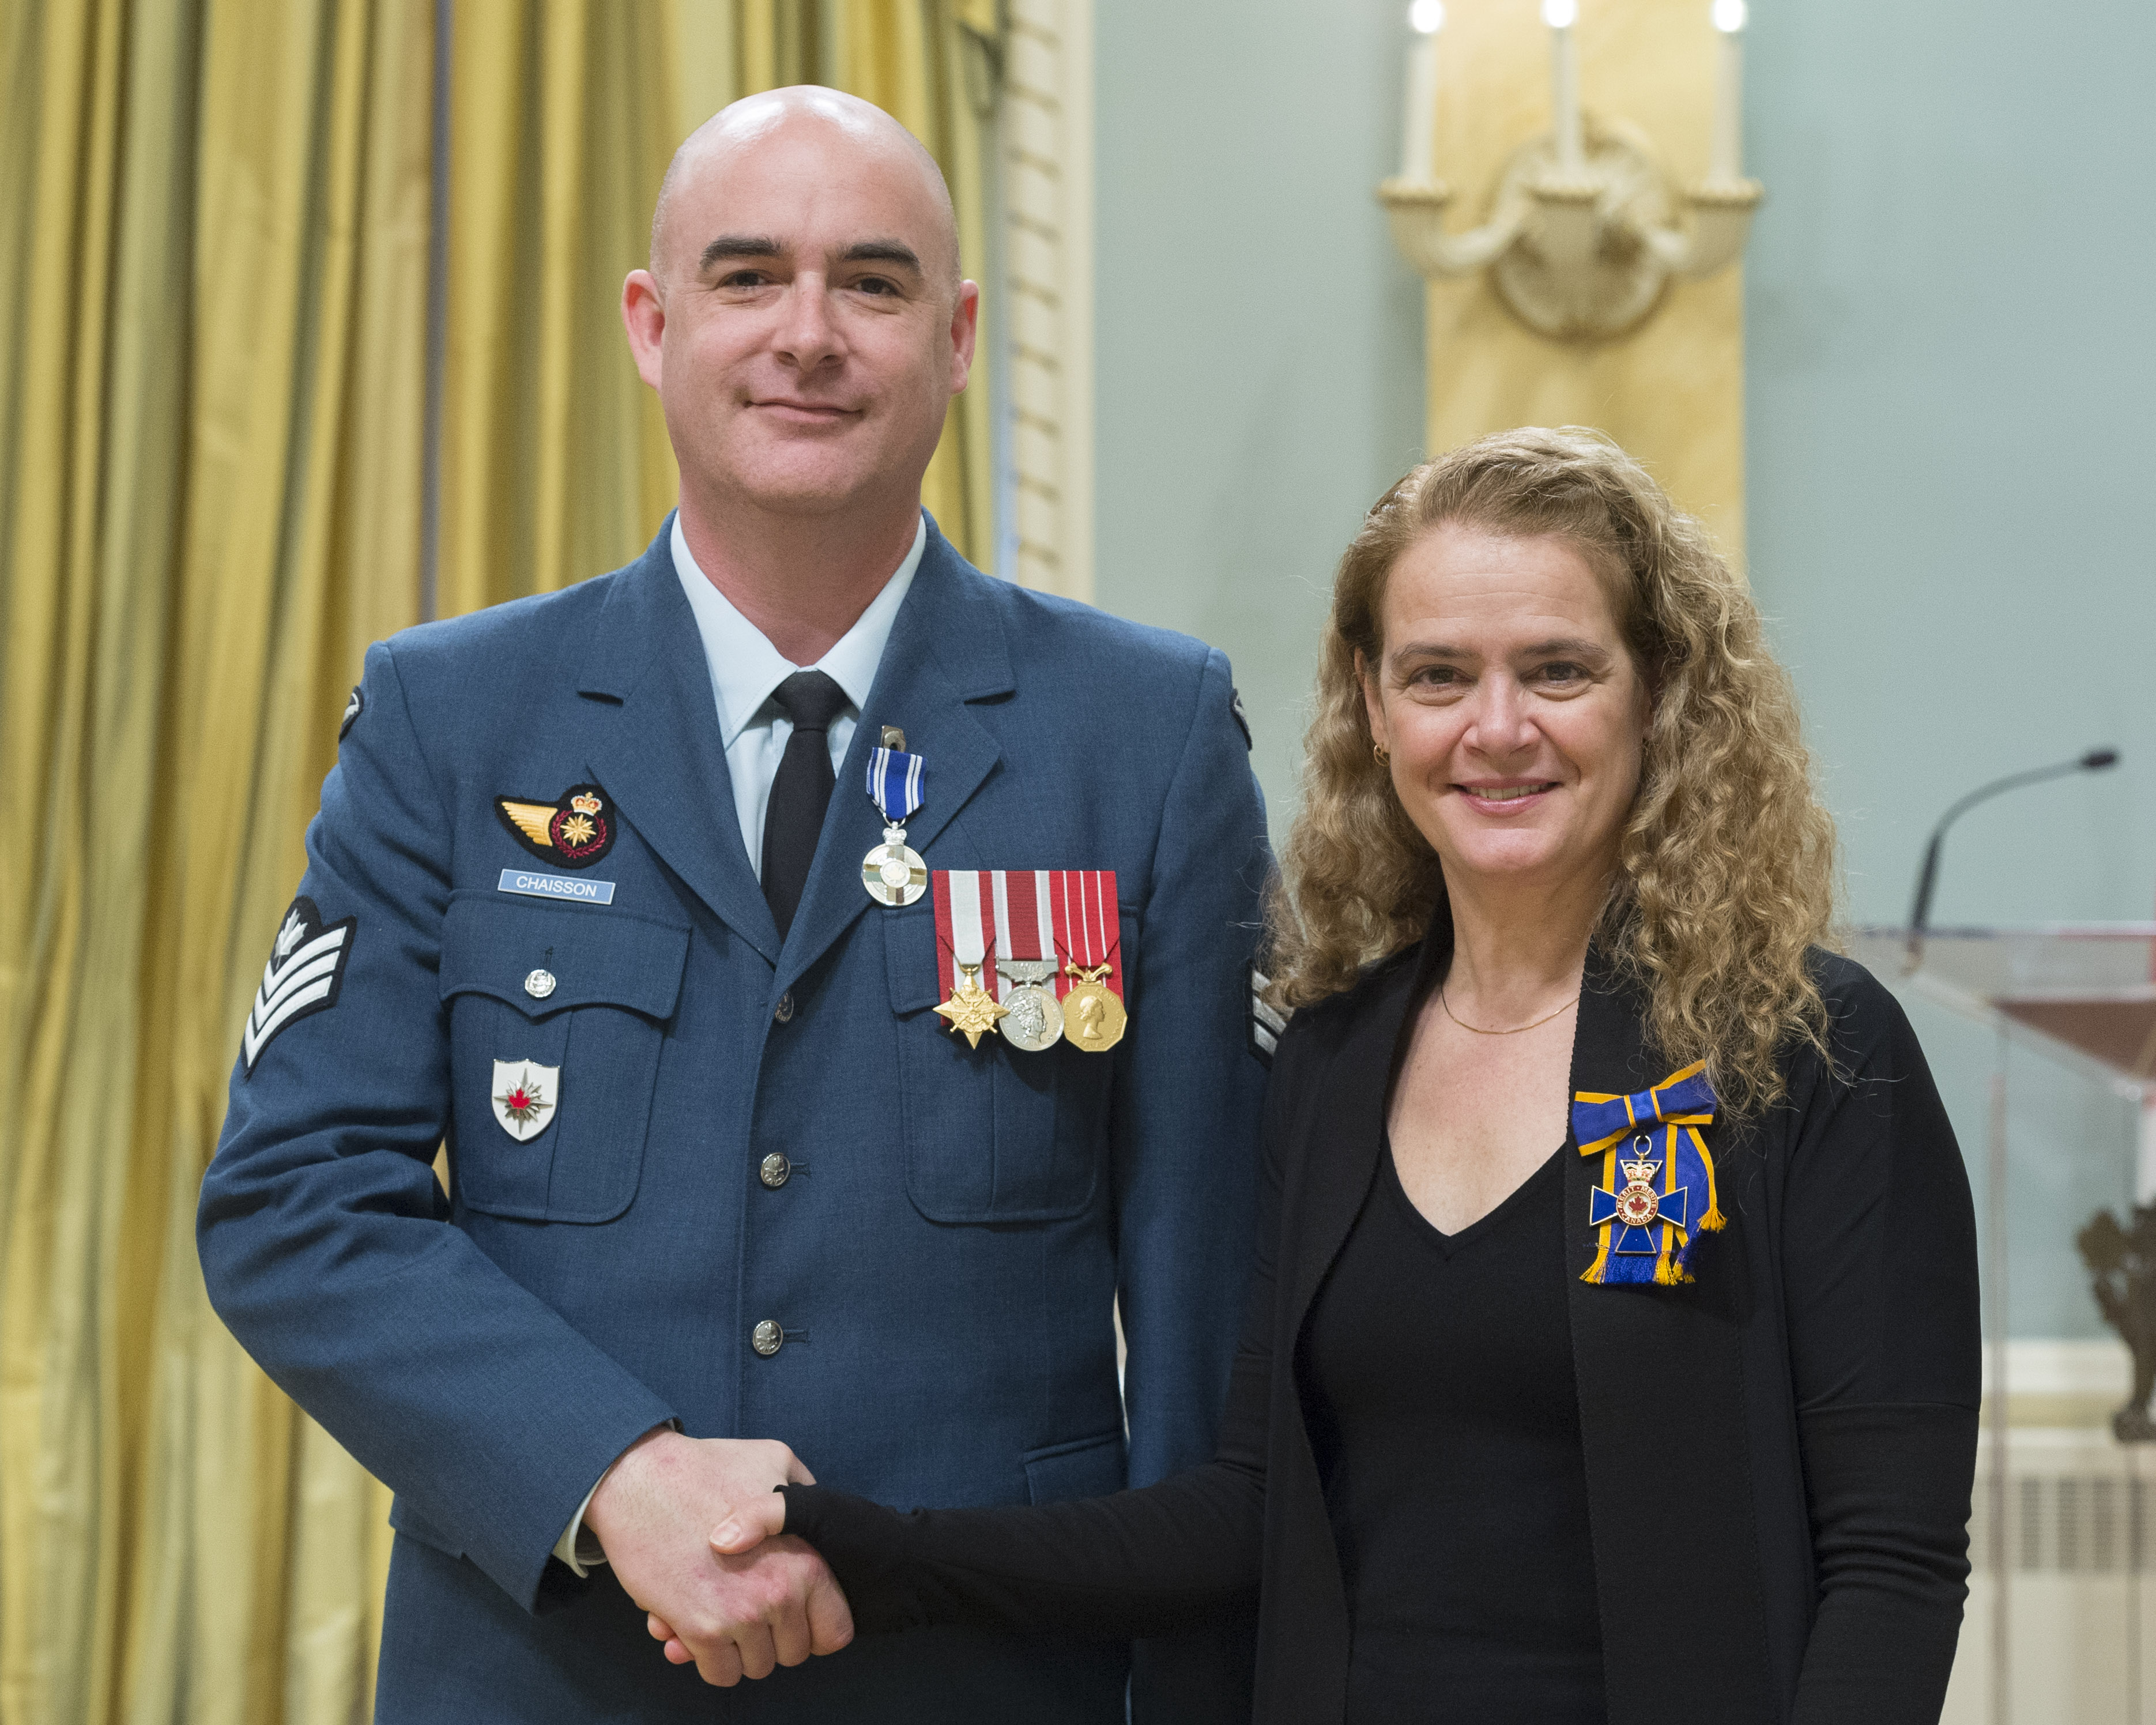 Master Corporal John Trevor Chaisson receives the Meritorious Service Medal (Military Division) from Governor General and Commander-in-Chief of Canada Julie Payette on February 28, 2018. PHOTO: Sergeant Johanie Maheu, OSGG, GG05-2018-0066-026